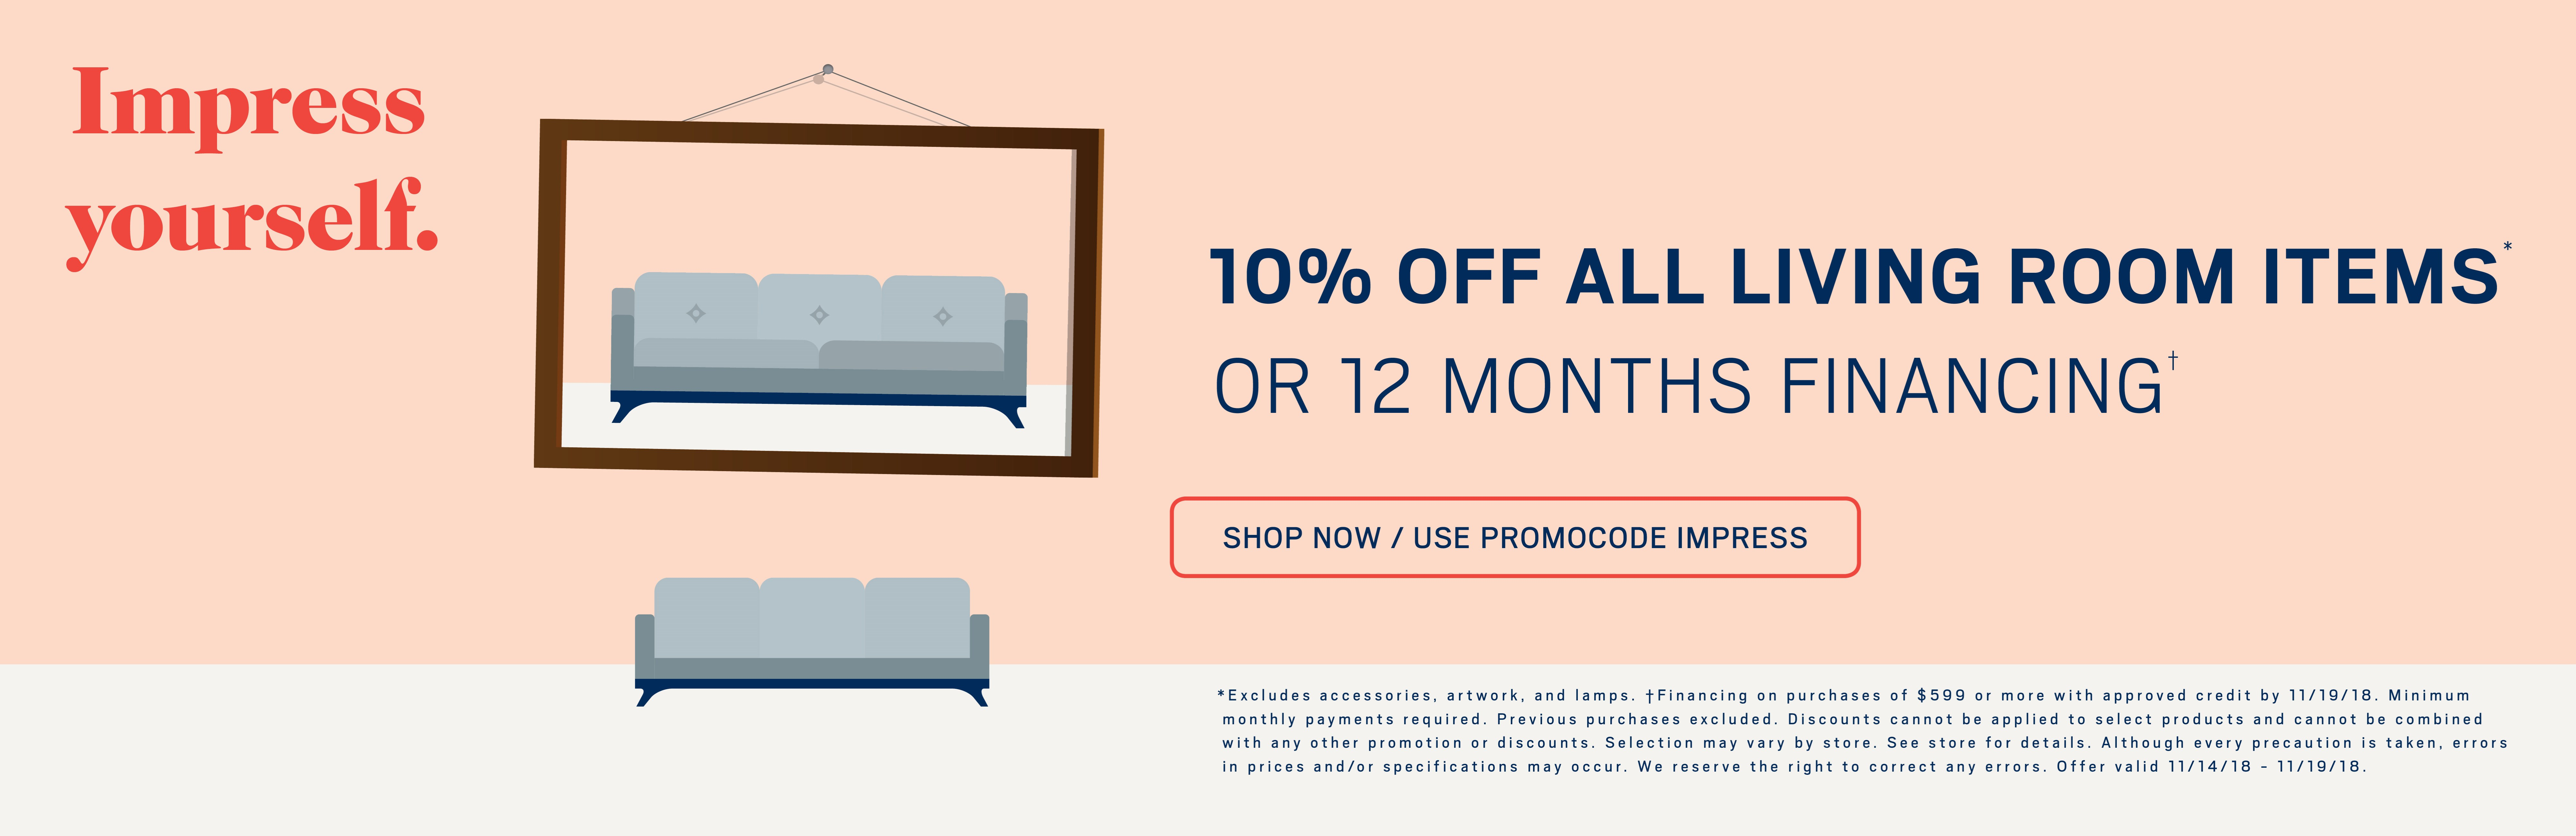 10% off all living room items or 12 months financing; use promo code IMPRESS. See store for details.